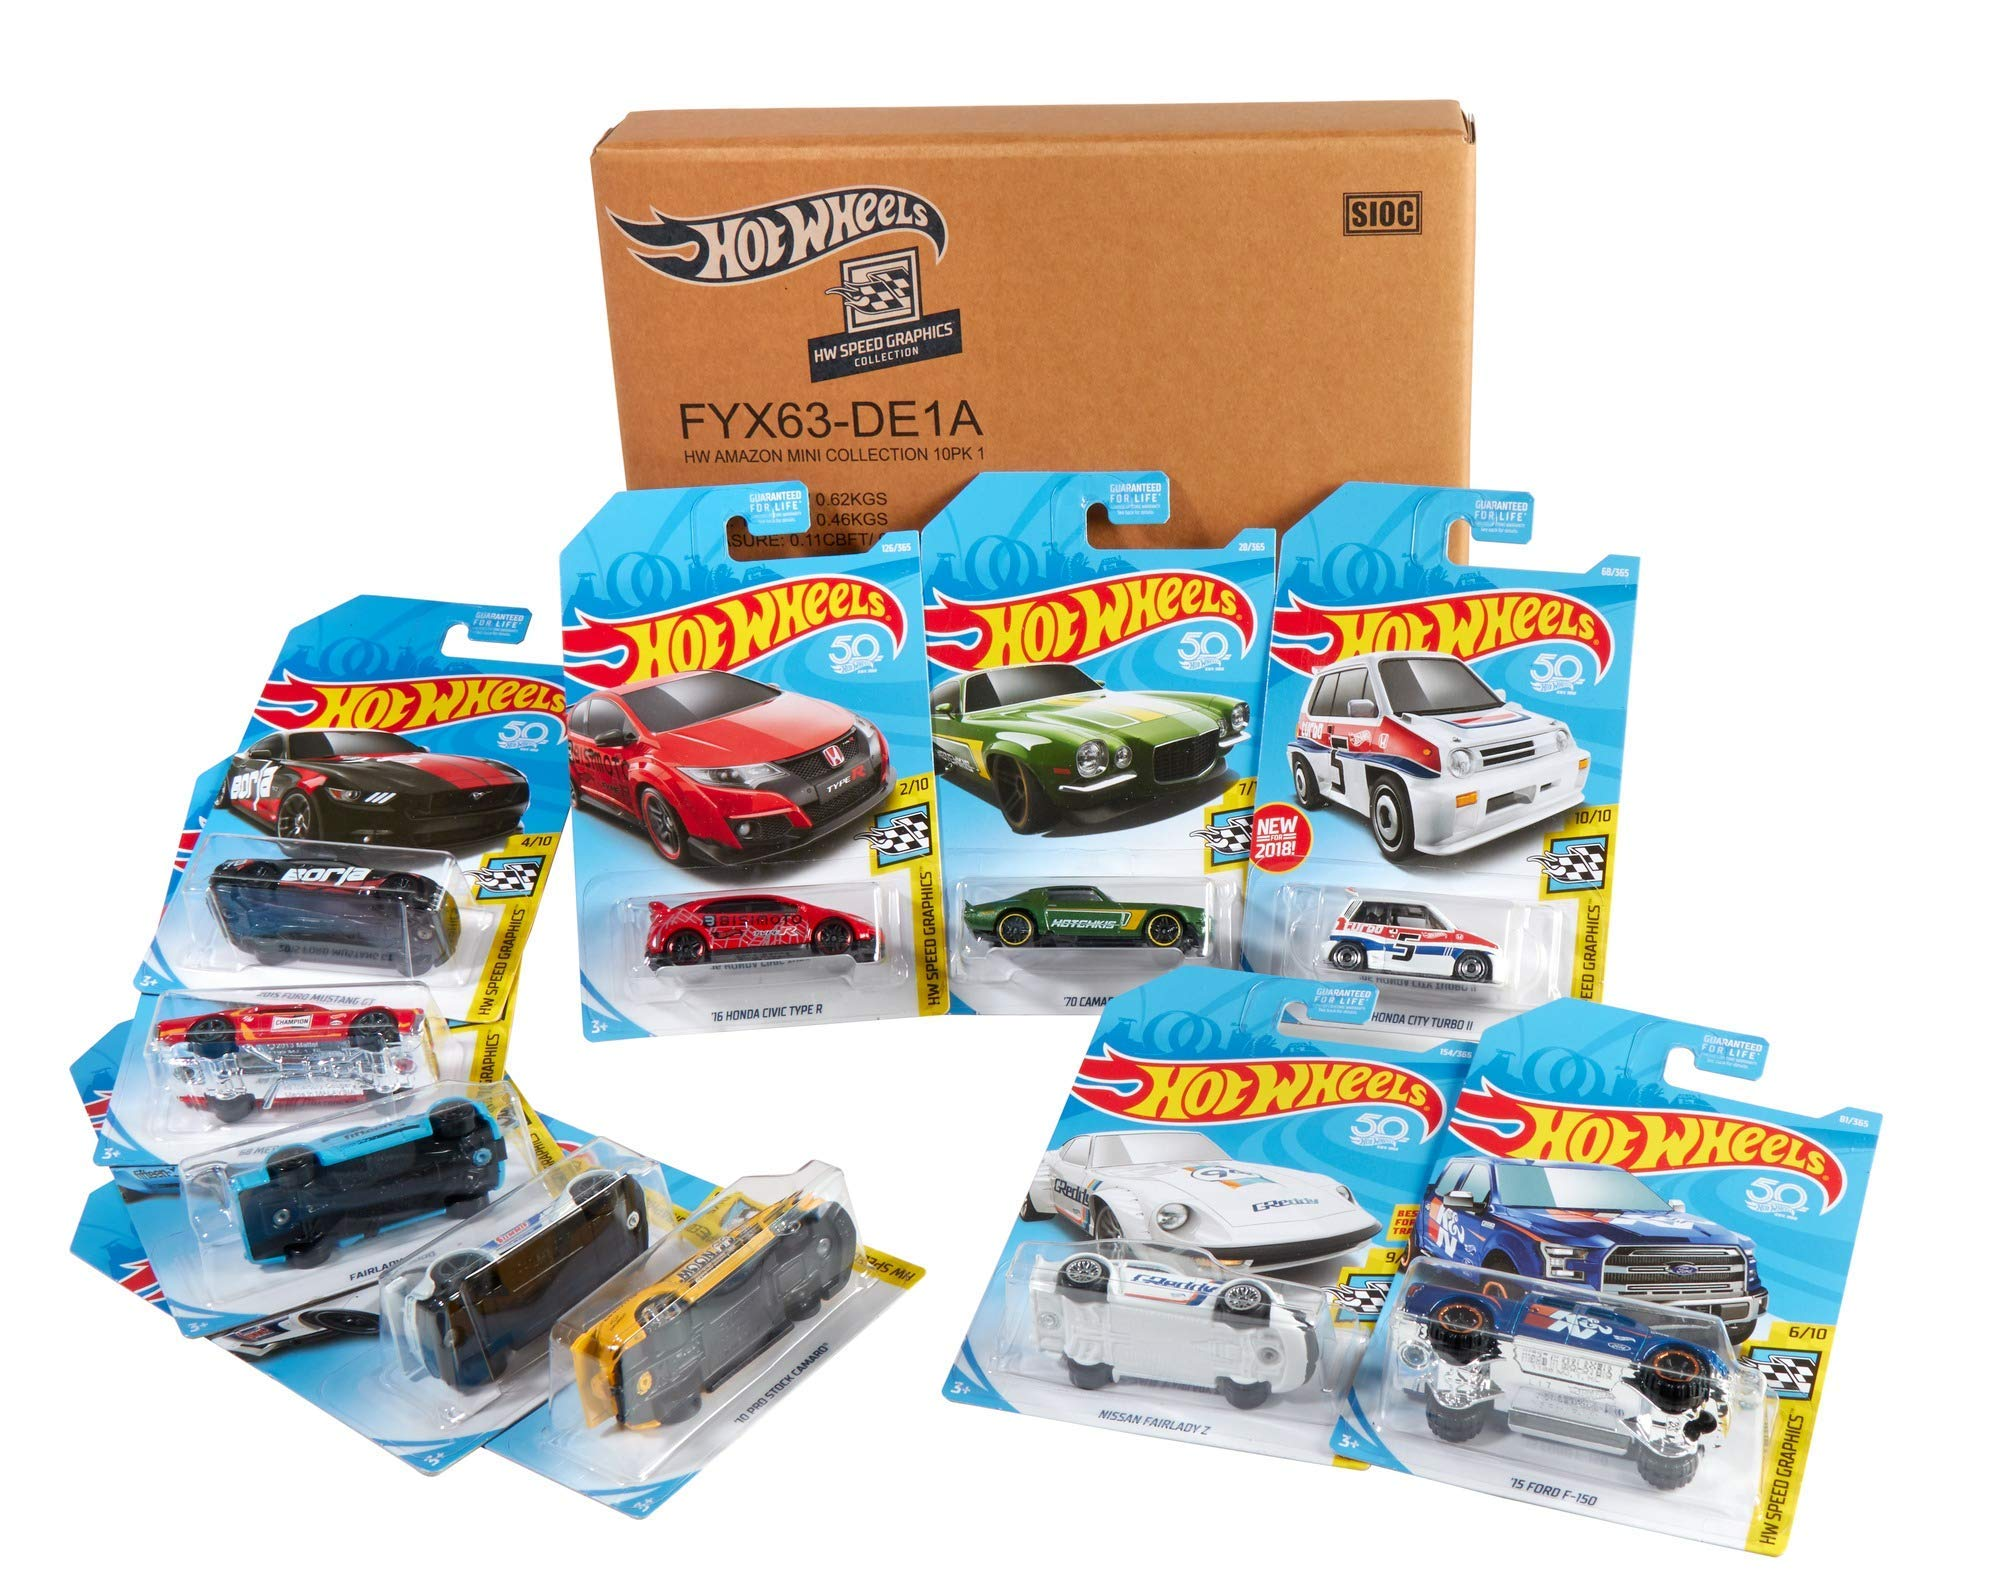 Hot Wheels FYX63 Amazon Exclusive 10 Vehicle Pack Mini Collection, Multicoloured